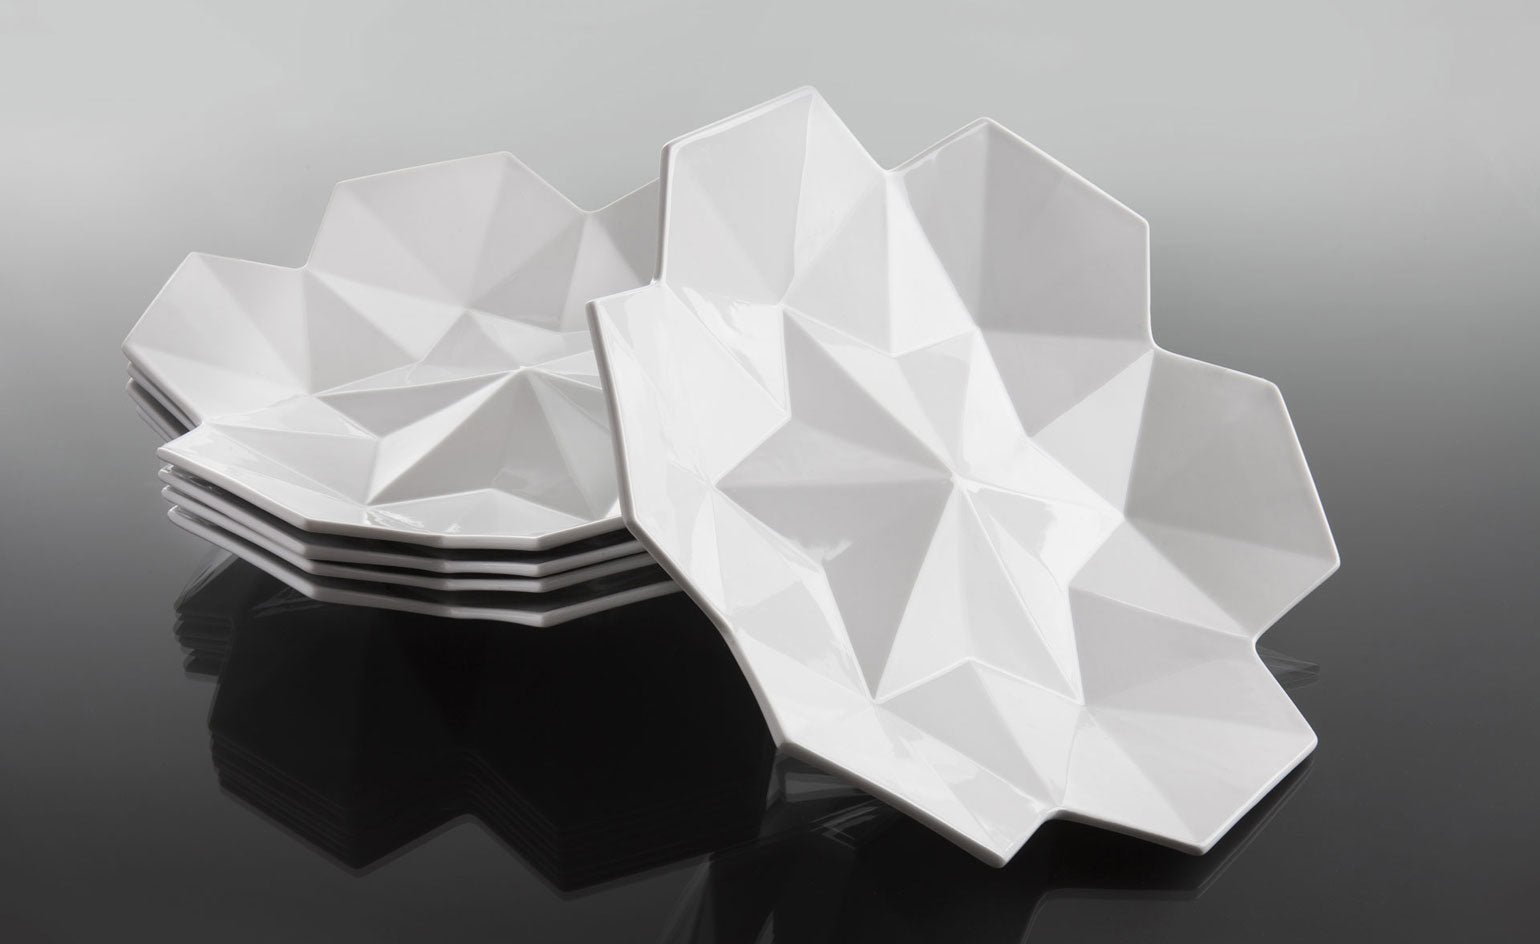 Cubist dinnerware designs from Lauriger